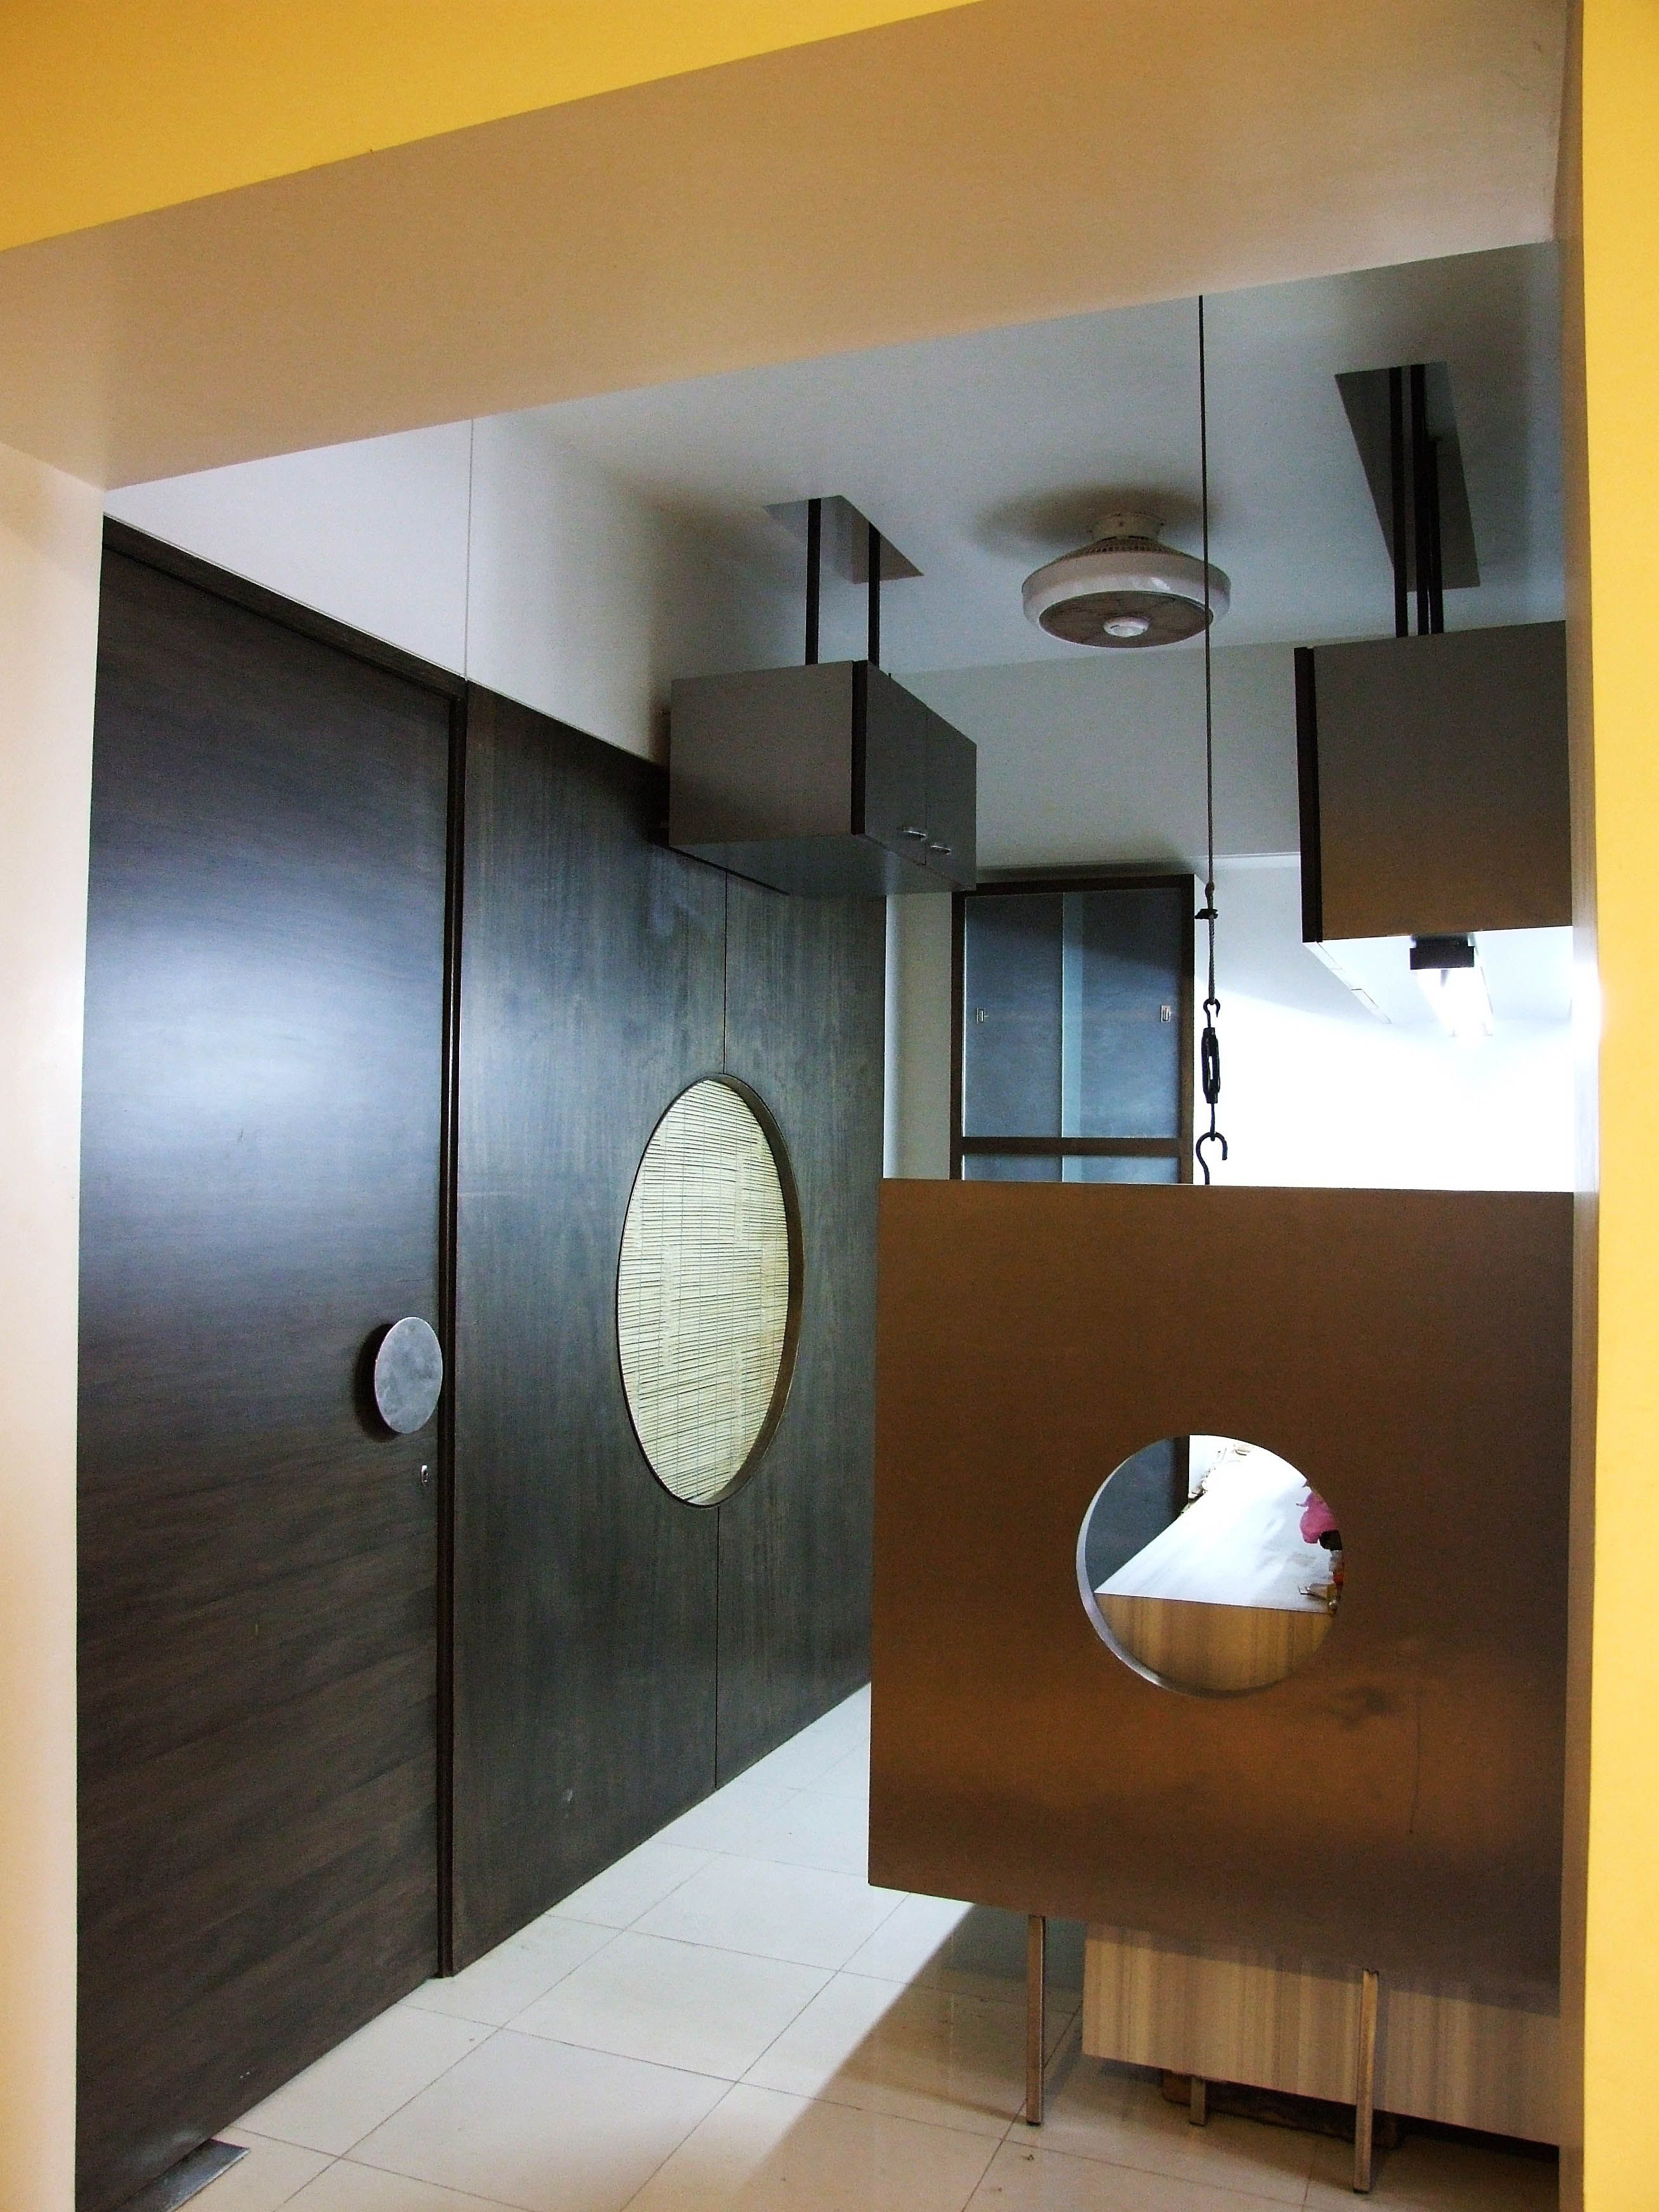 Interior Circle Cane Ahmedabad Project By Vhdesignsstudio